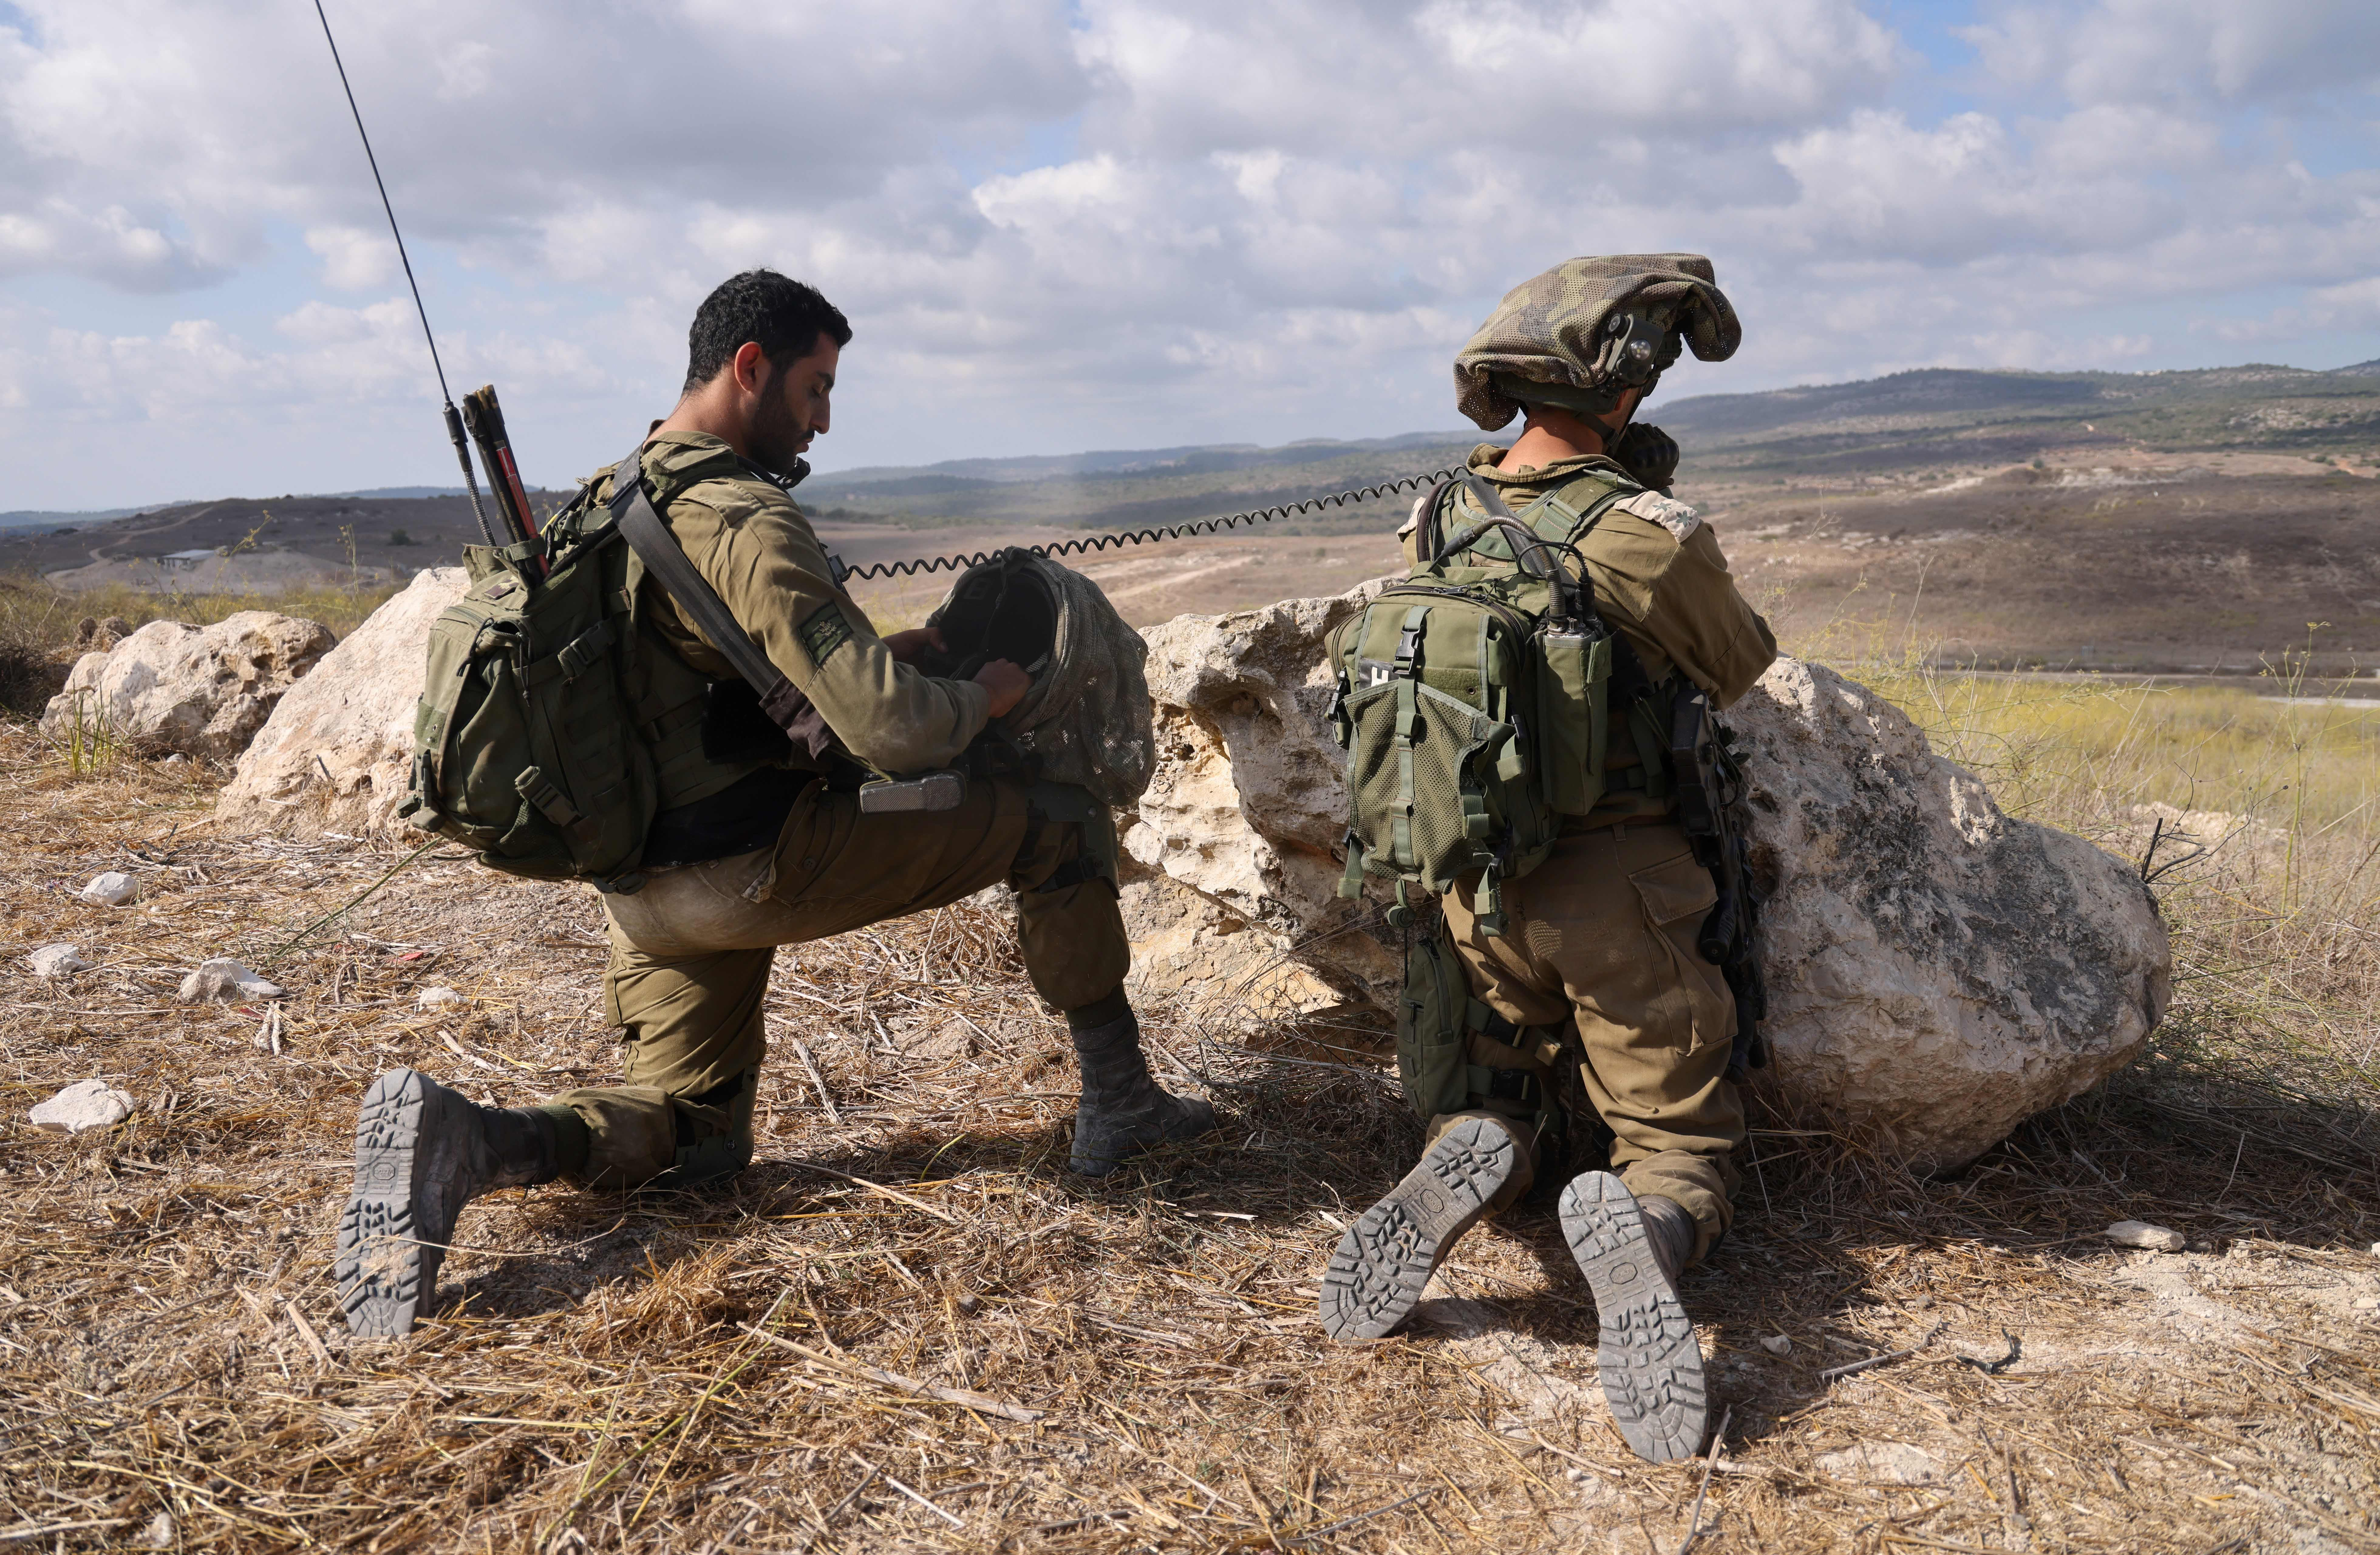 Israeli soldiers take part in 2020 military exercises near the northern Elyakim area during a simulation to protect the country's northern border, practiced taking out hostile targets. (Emmanuel Dunand/AFP via Getty Images)